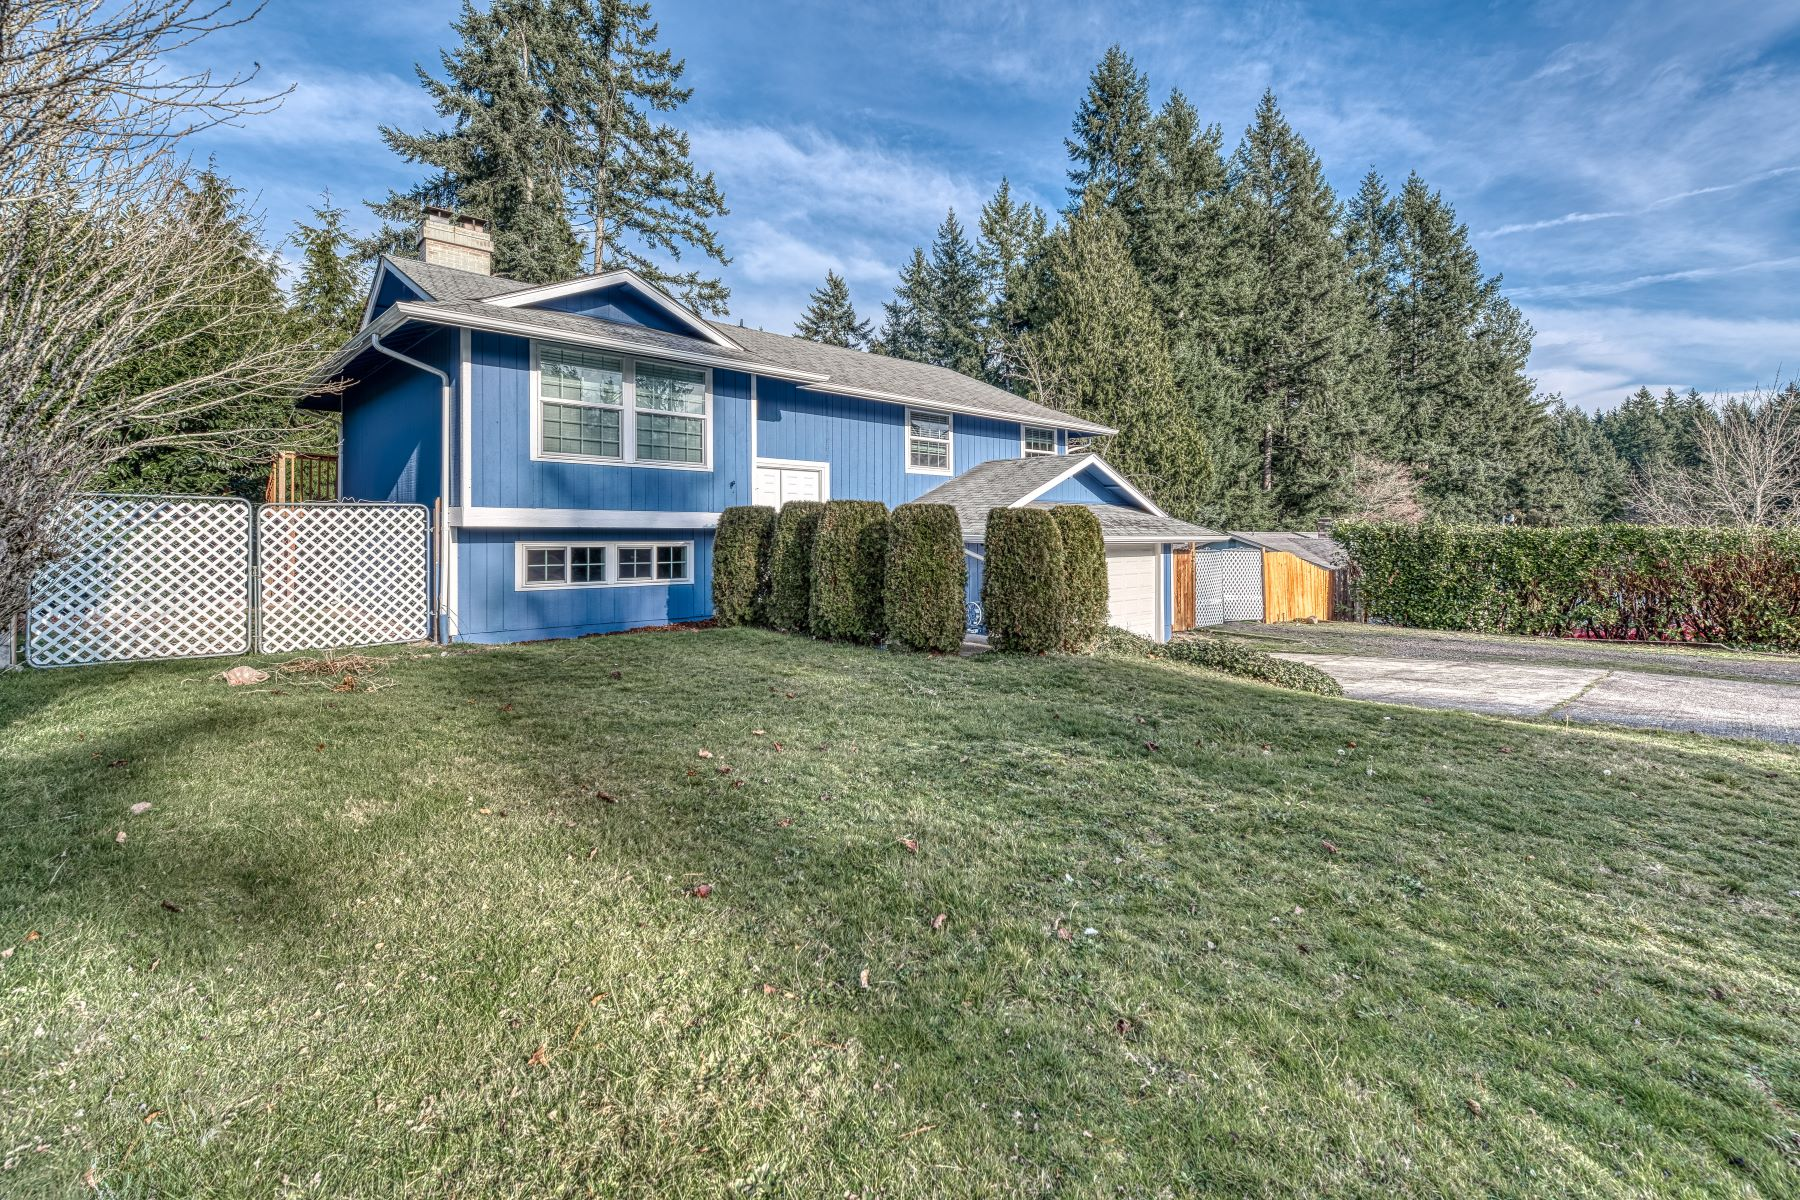 Other Residential Homes for Sale at 627 Conifer Dr, Bremerton, WA, 98311 627 Conifer Dr Bremerton, Washington 98311 United States